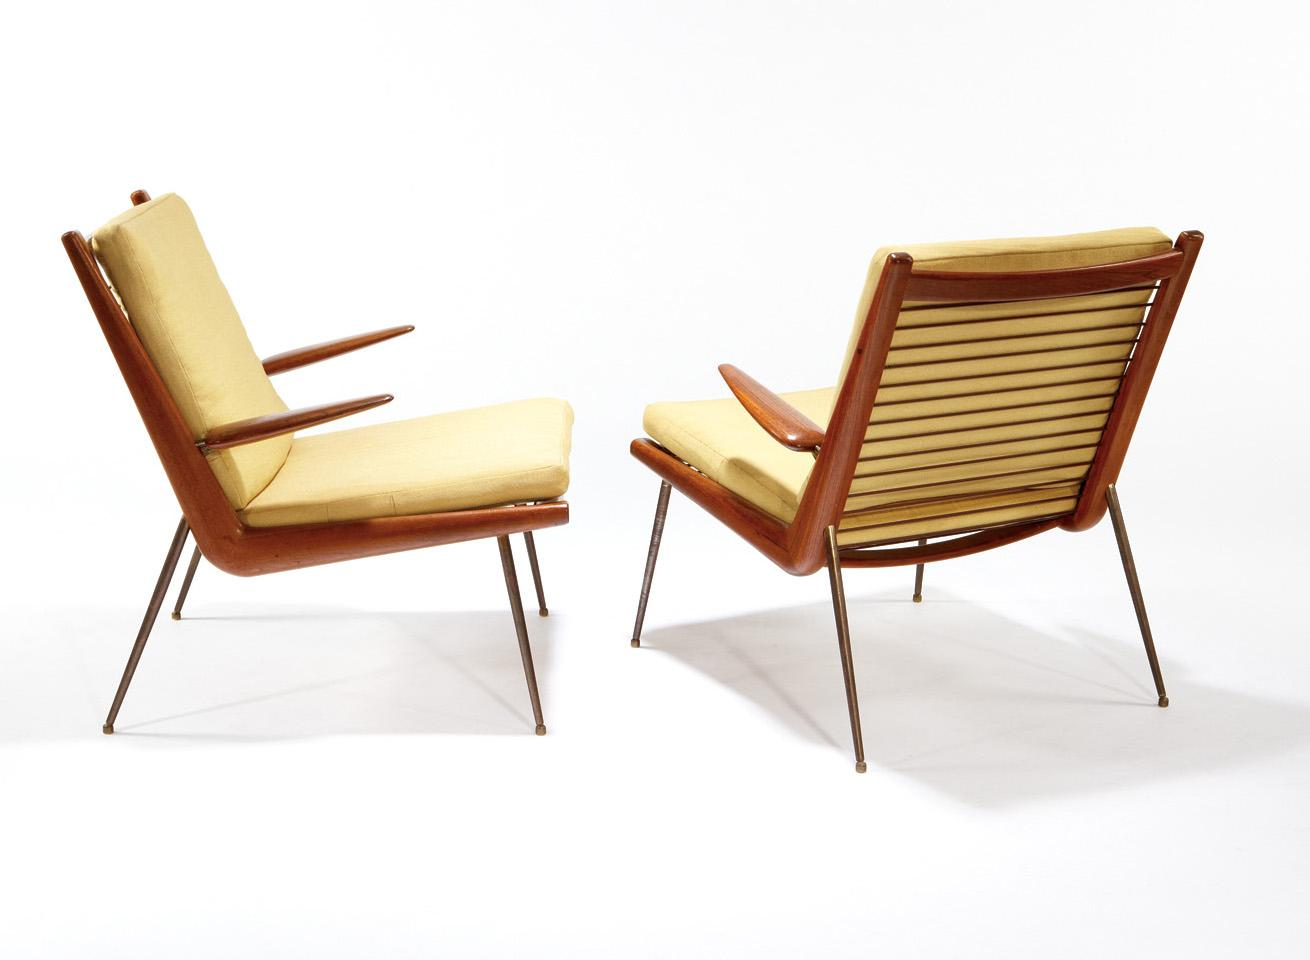 Awesome Peter Hvidt France Sons Pair Of Paddle Arm Lounge Chairs Caraccident5 Cool Chair Designs And Ideas Caraccident5Info